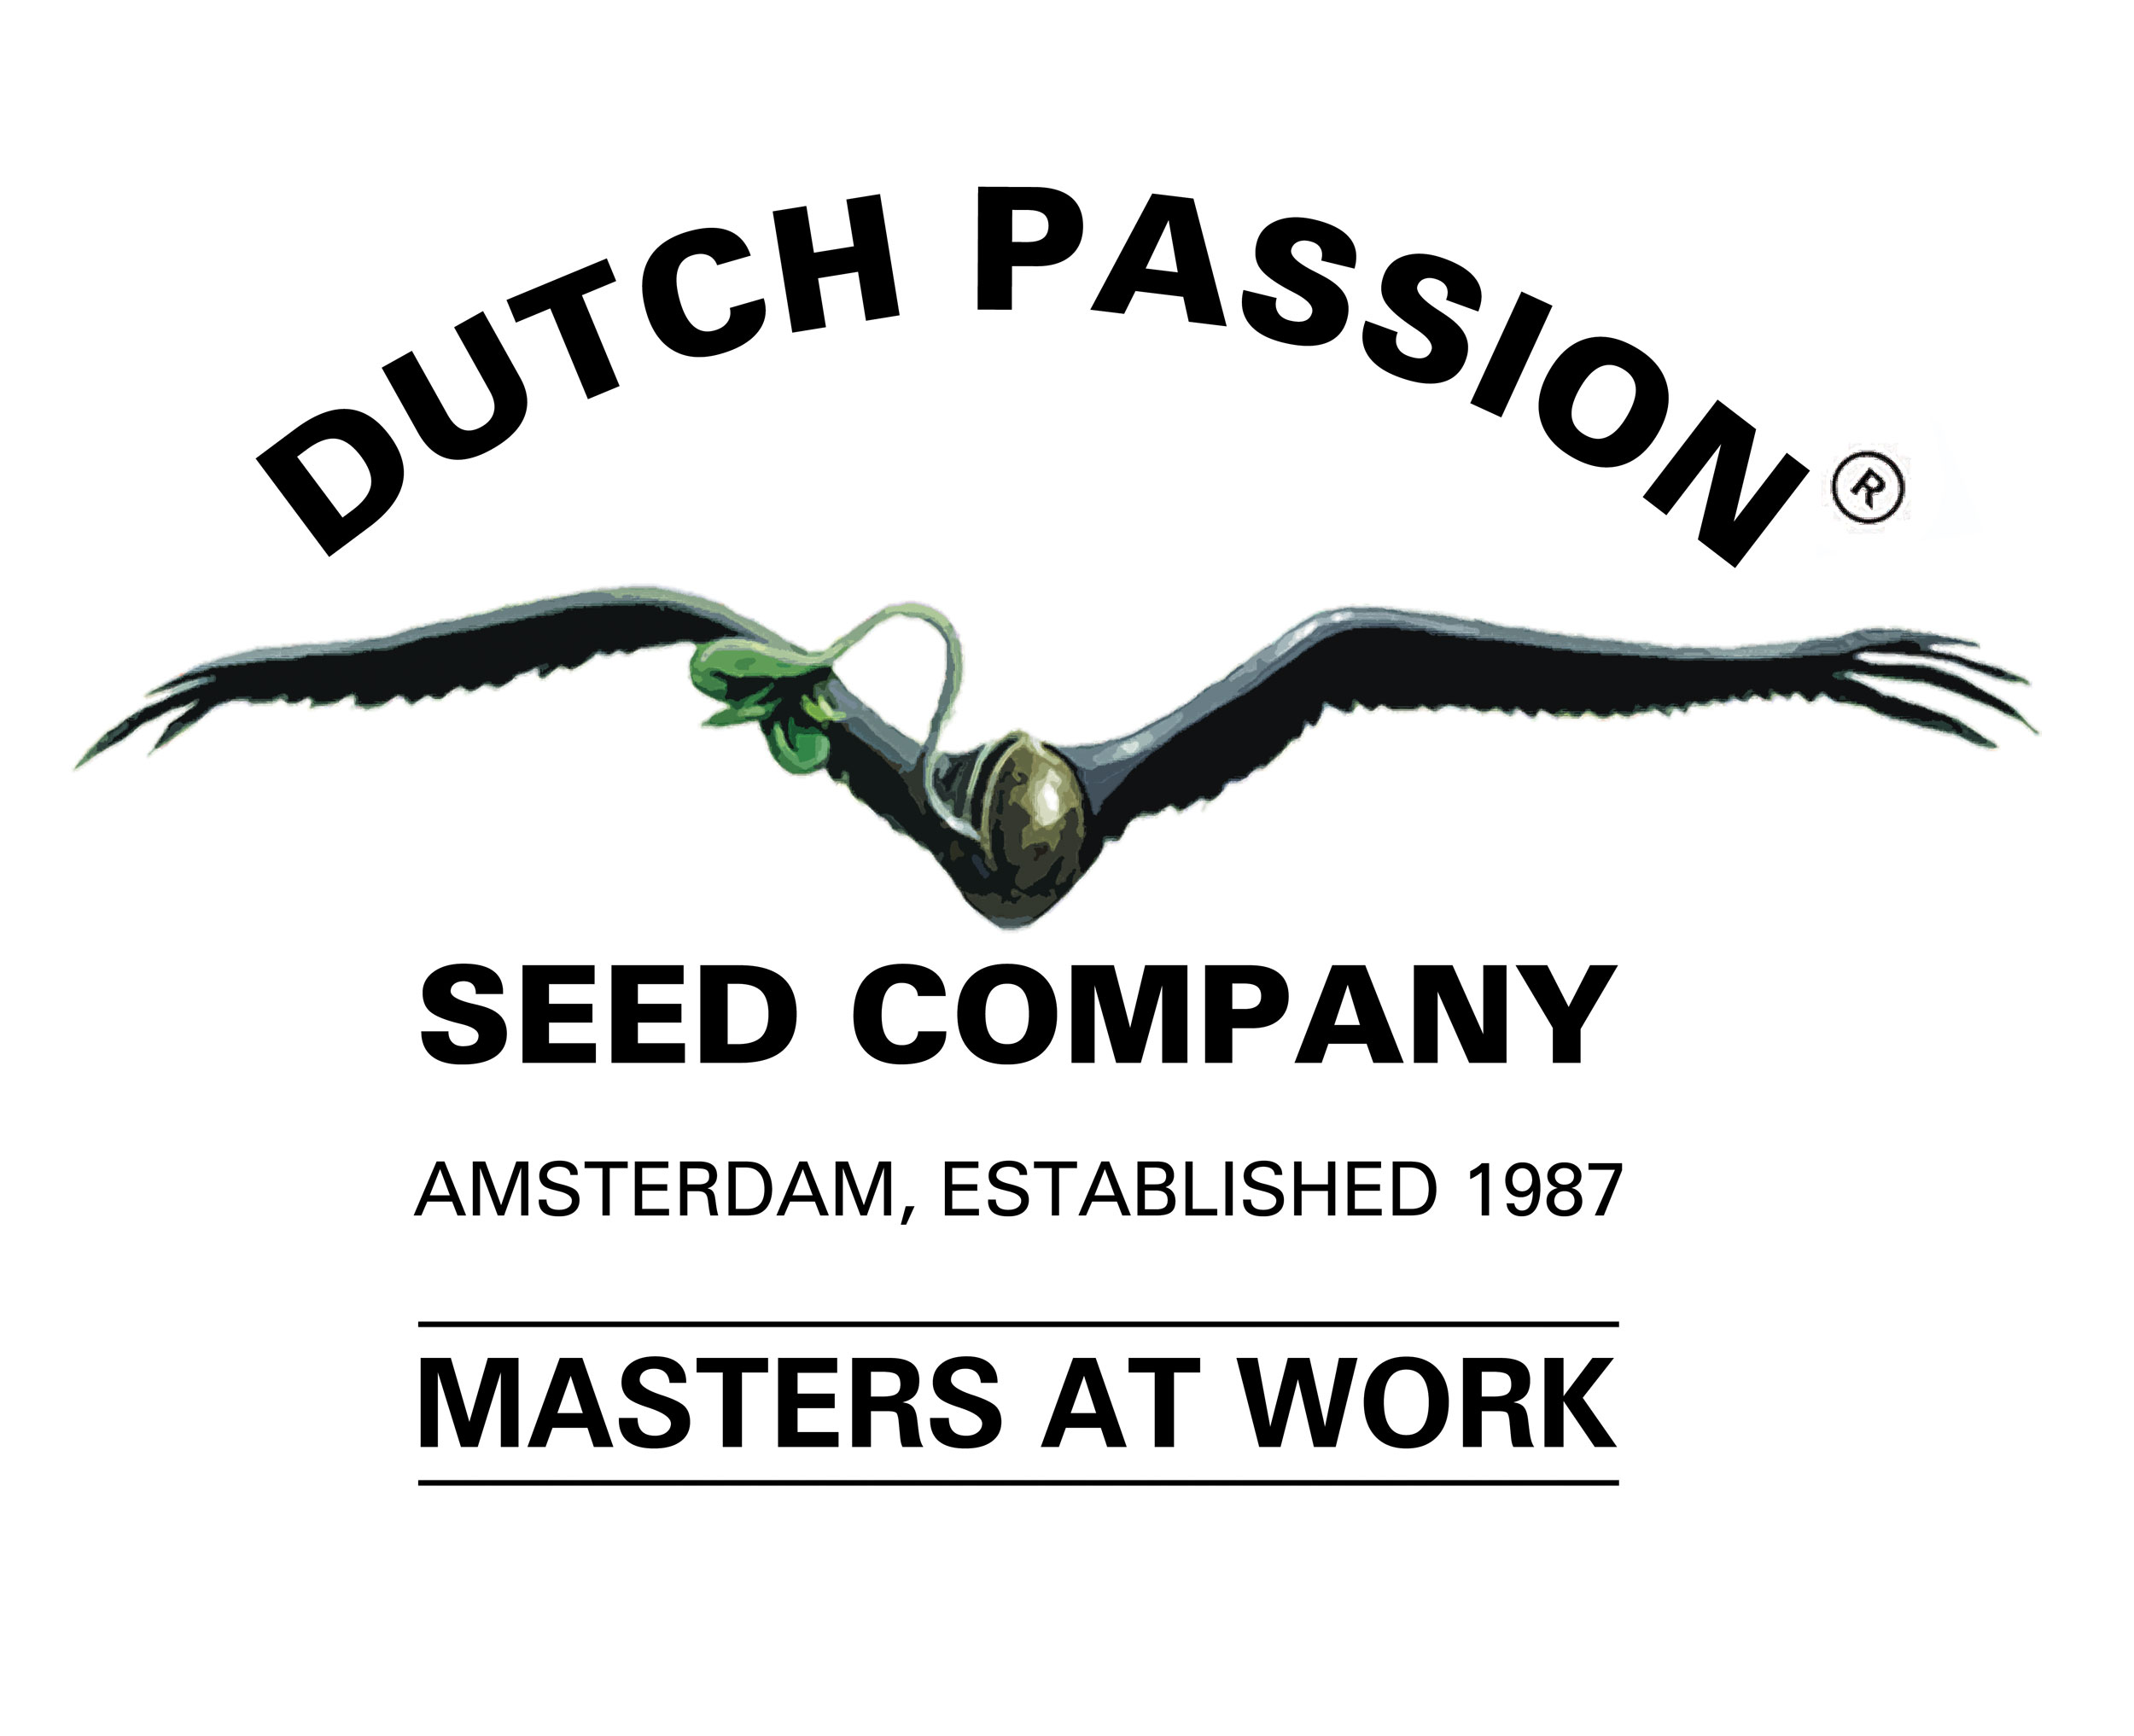 Dutch Passion AutoEuforia 7ks